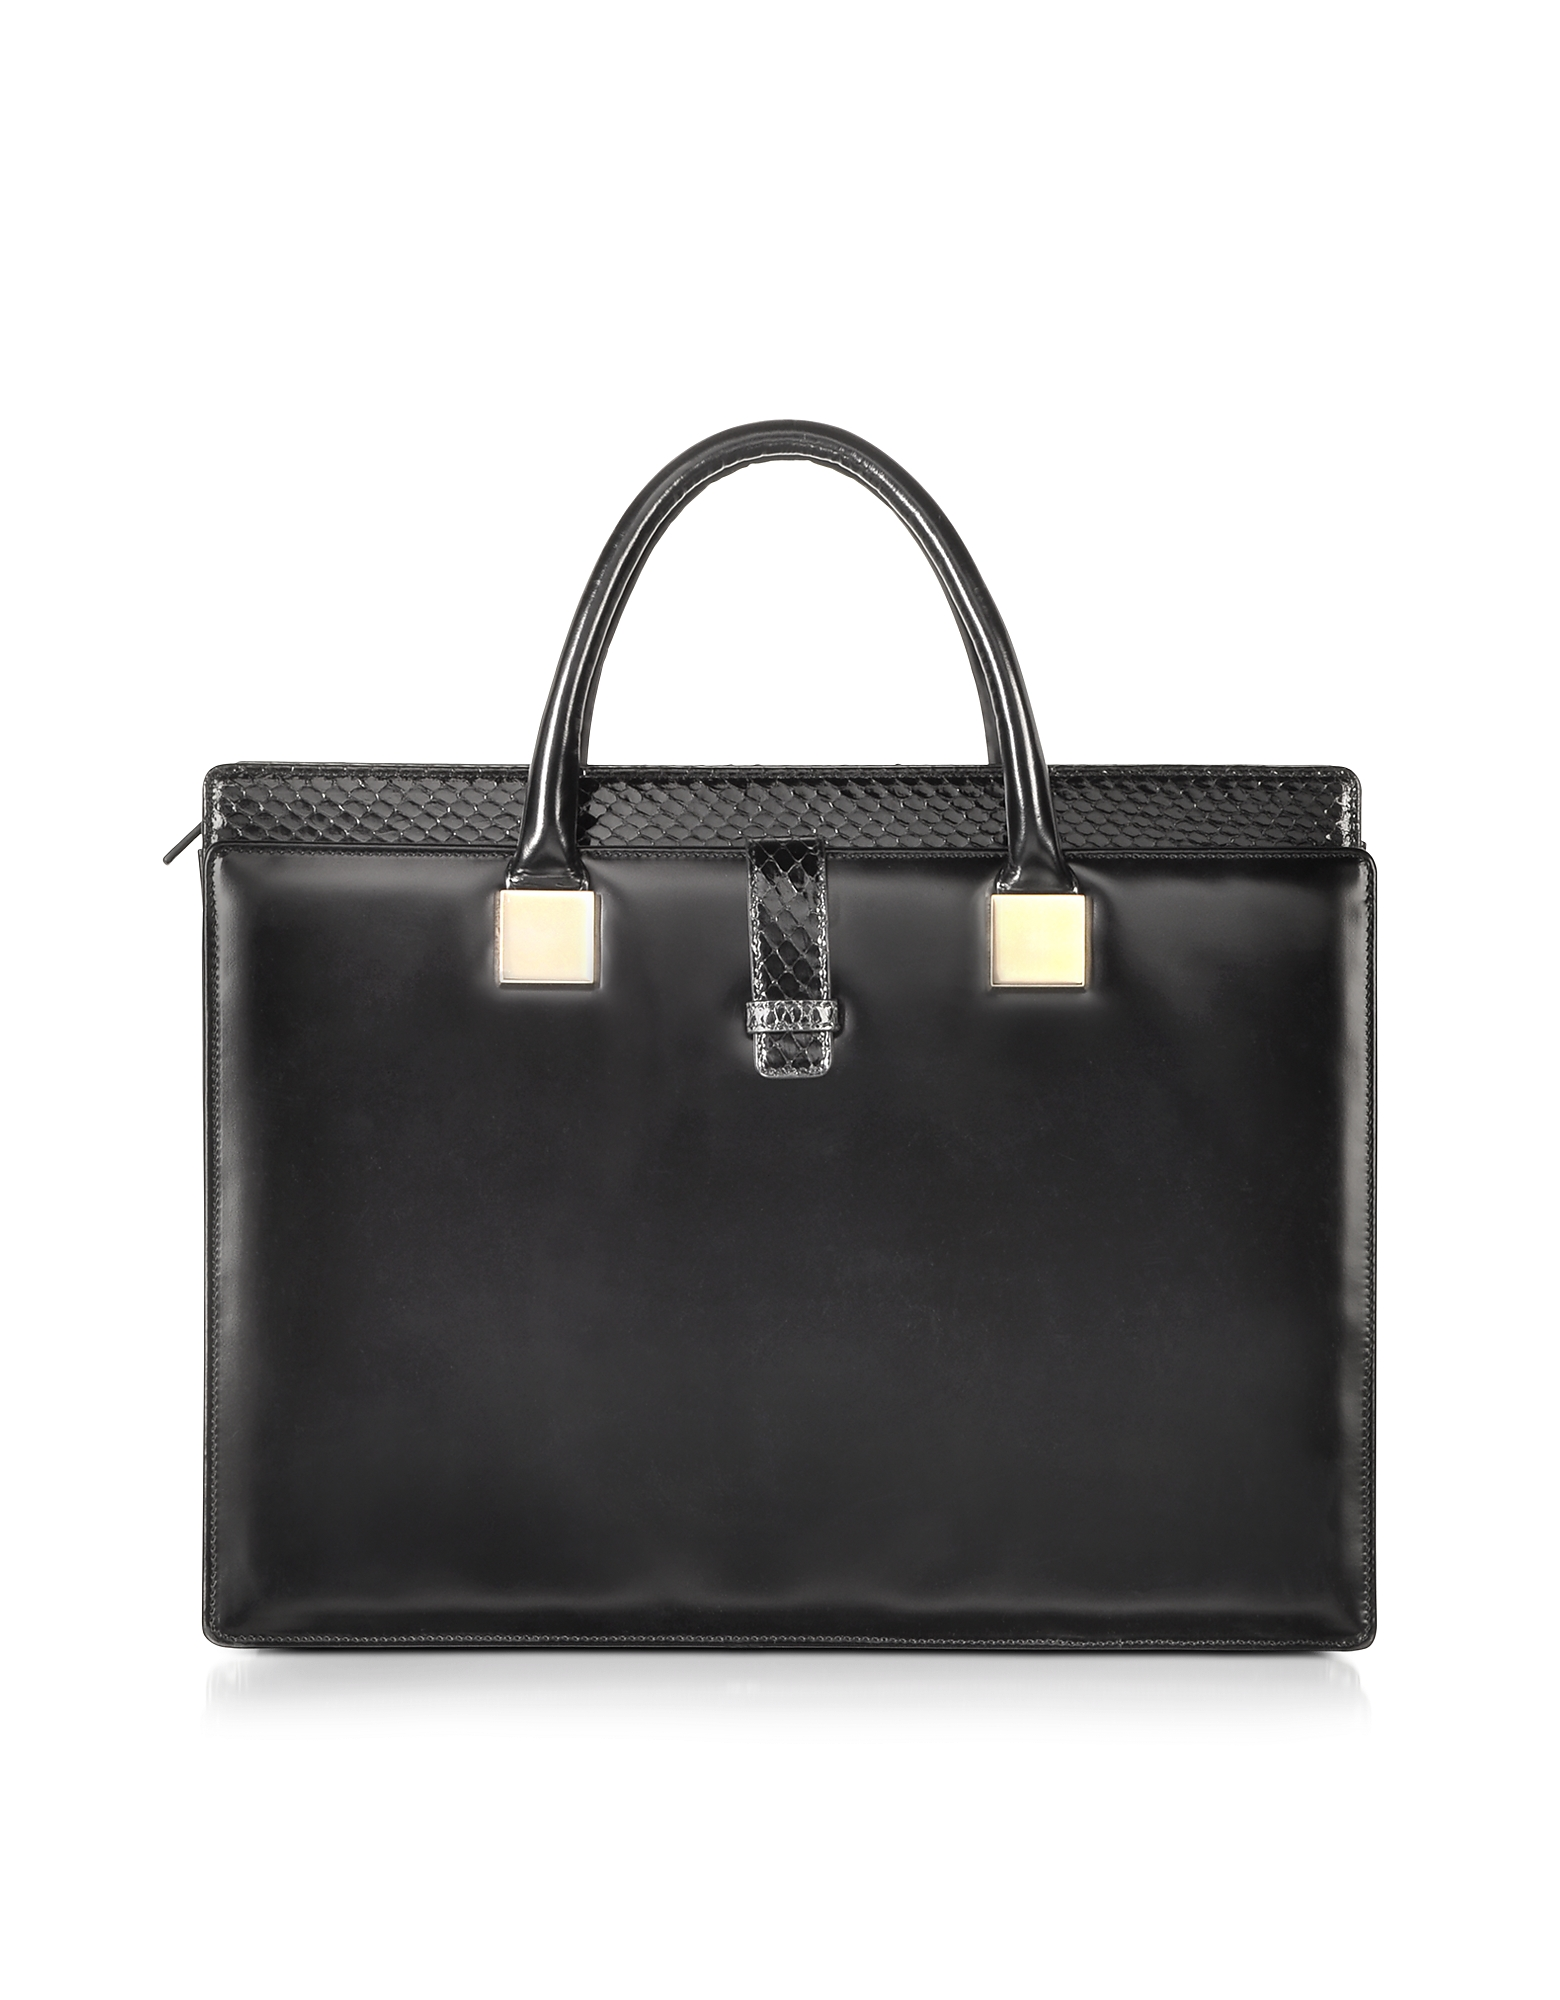 Linda Farrow Designer Handbags, Anniversary Black Ayers and Leather Tote (Luggage & Bags) photo